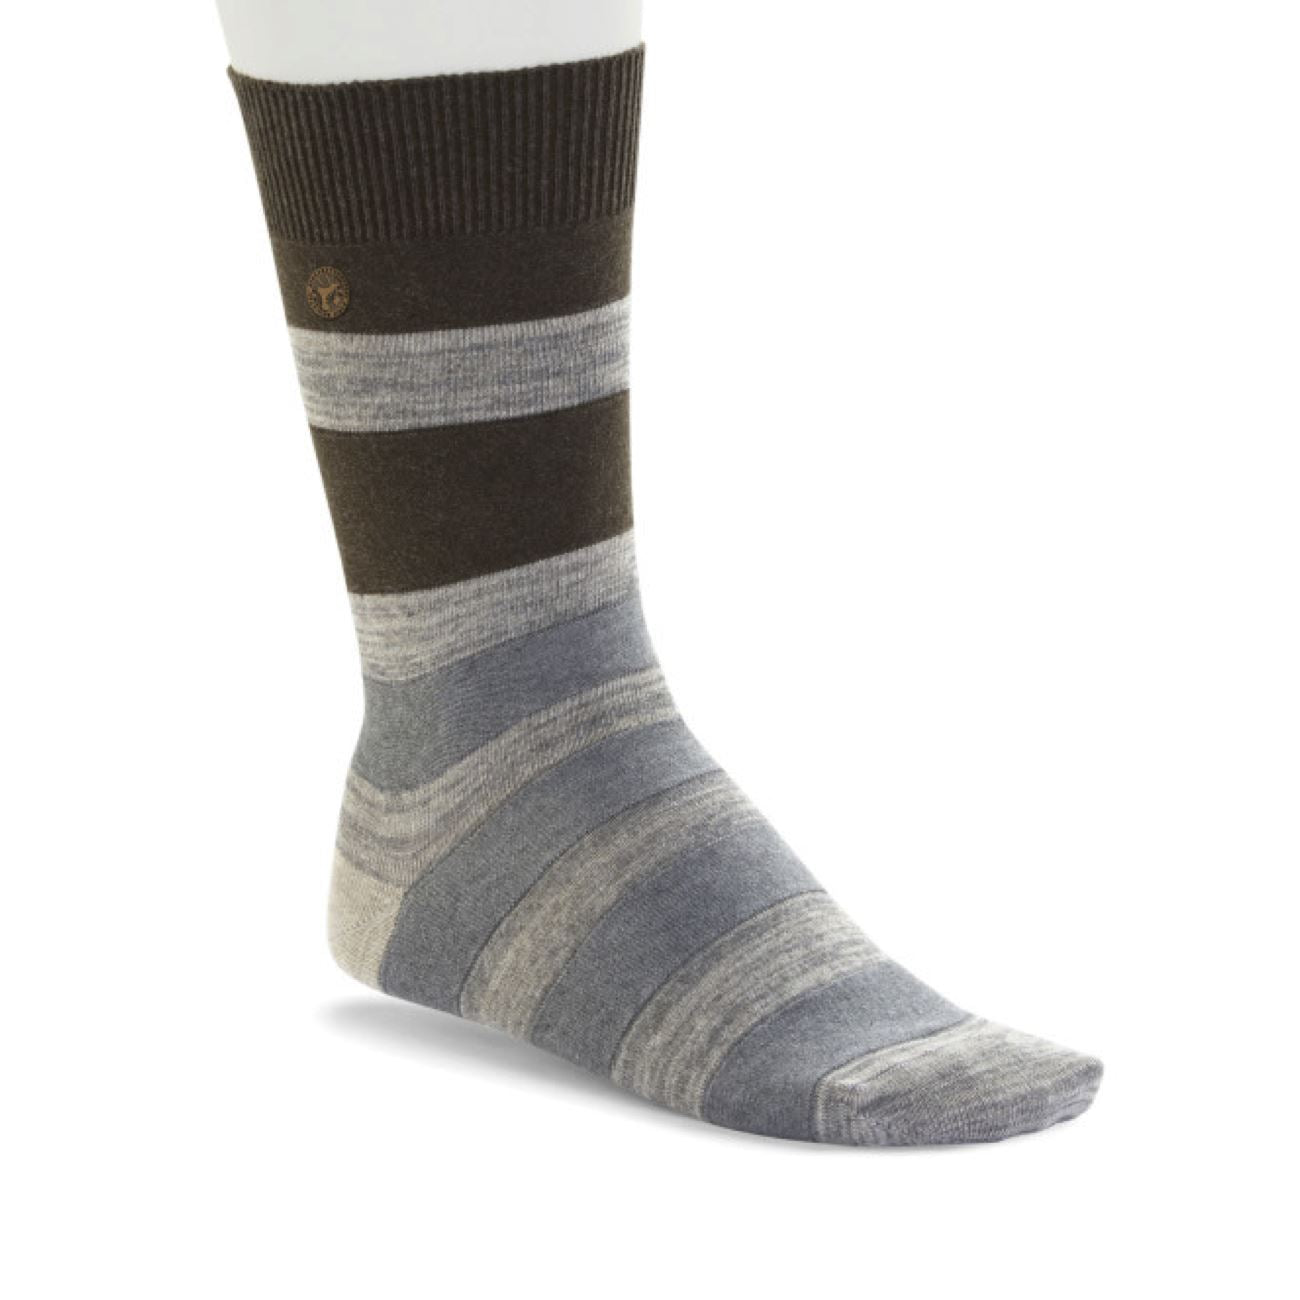 Birkenstock Socks, Fashion Stripe MEN, Camel Melange Socks Birkenstock Socks Camel melange 39